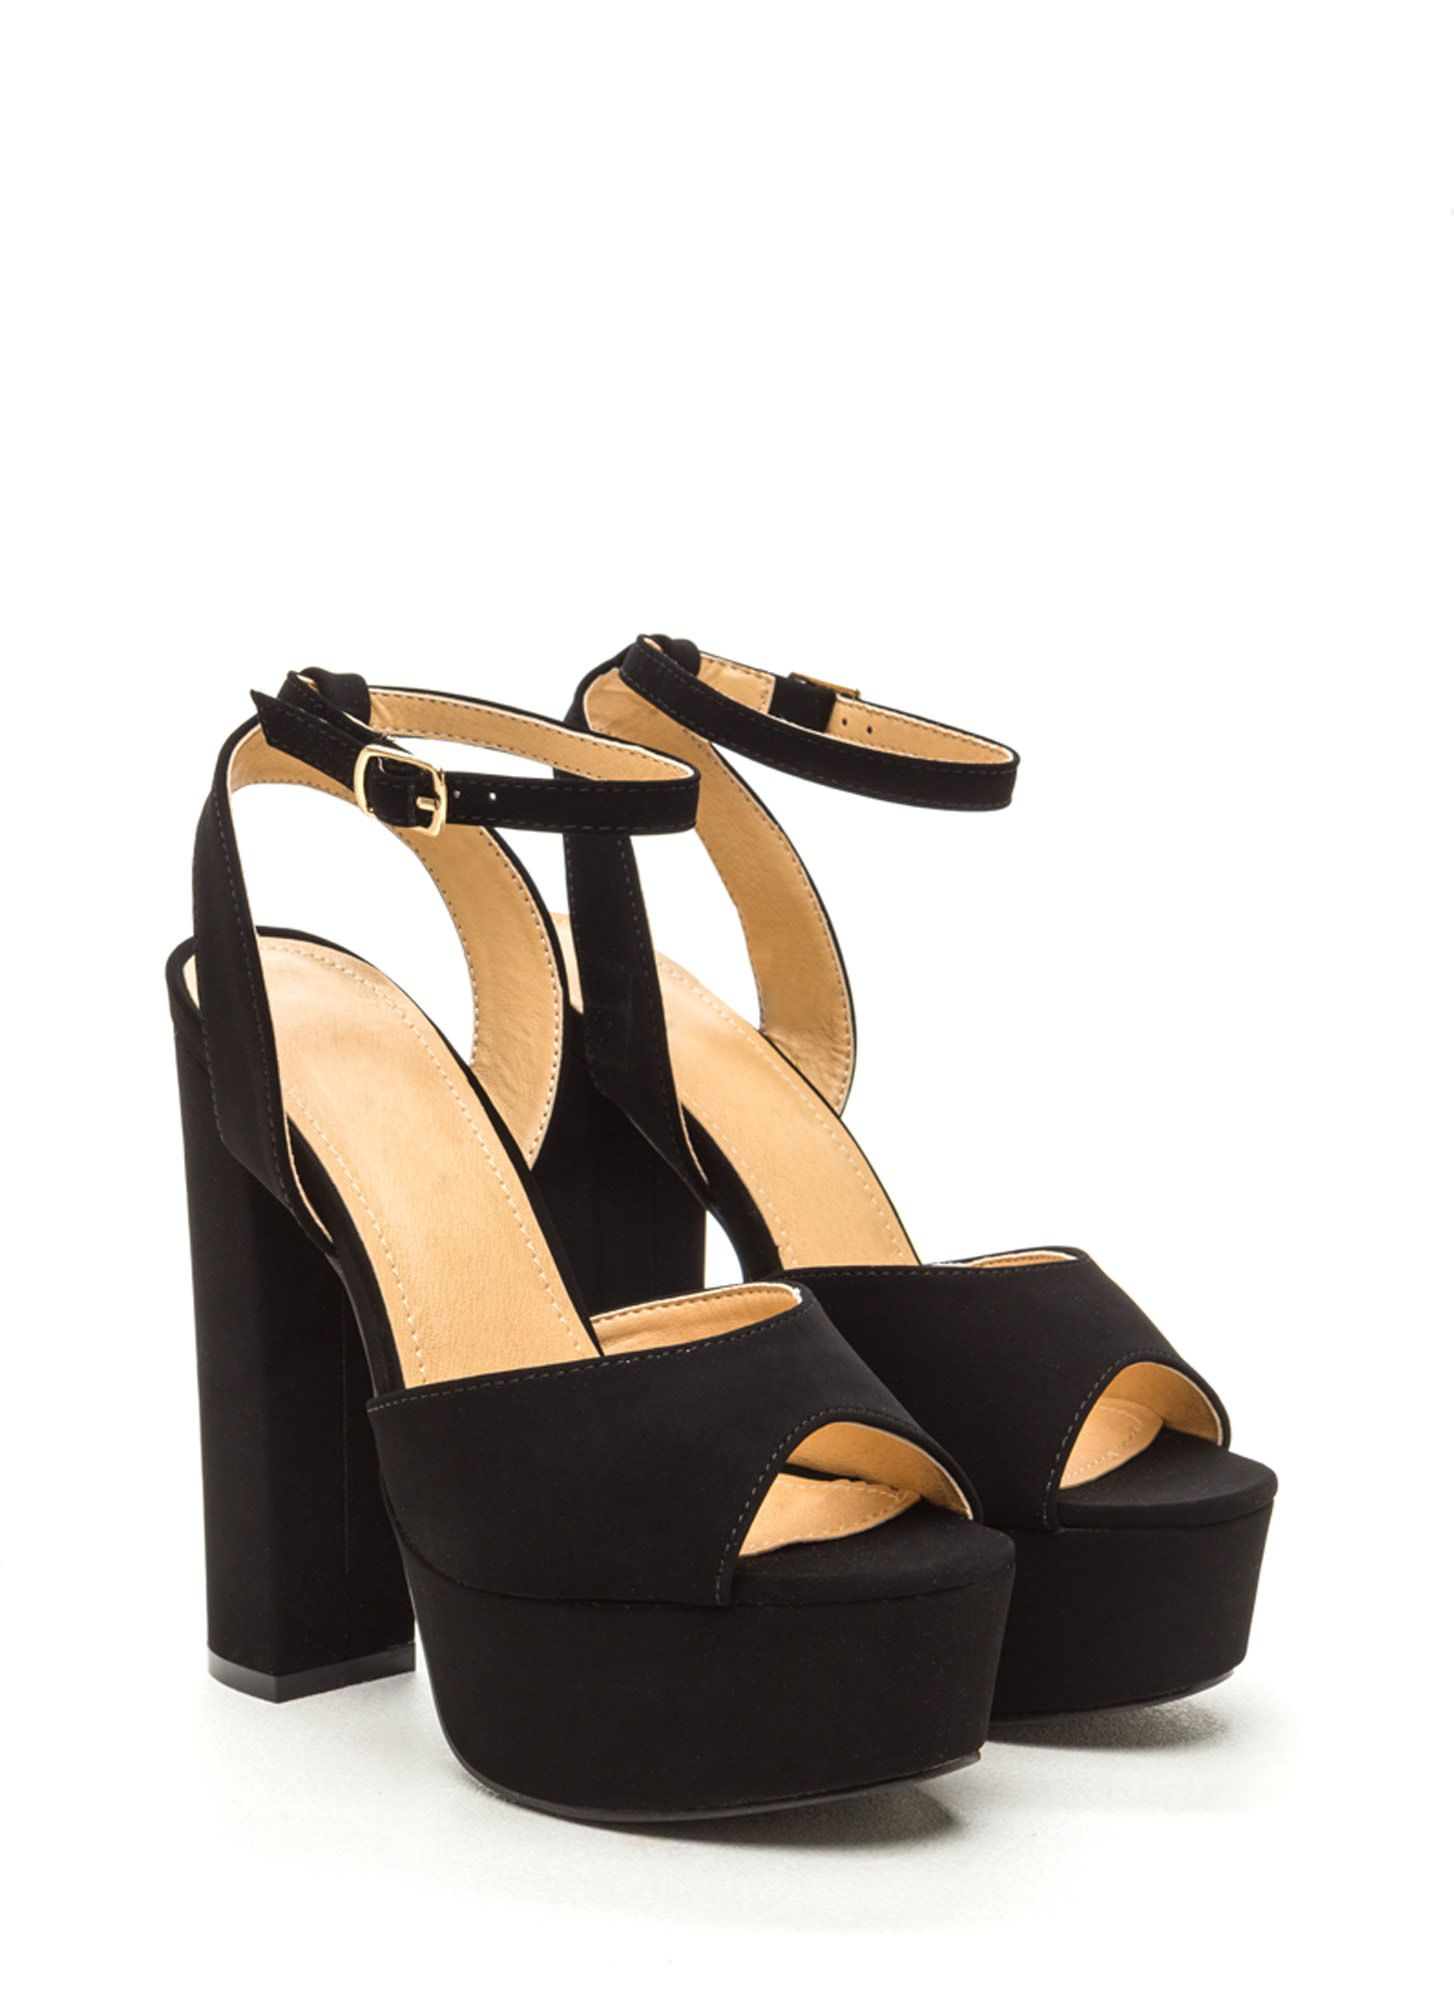 598d552af7 Channel your fave seventies bae in these sky-high platform heels! #heels #